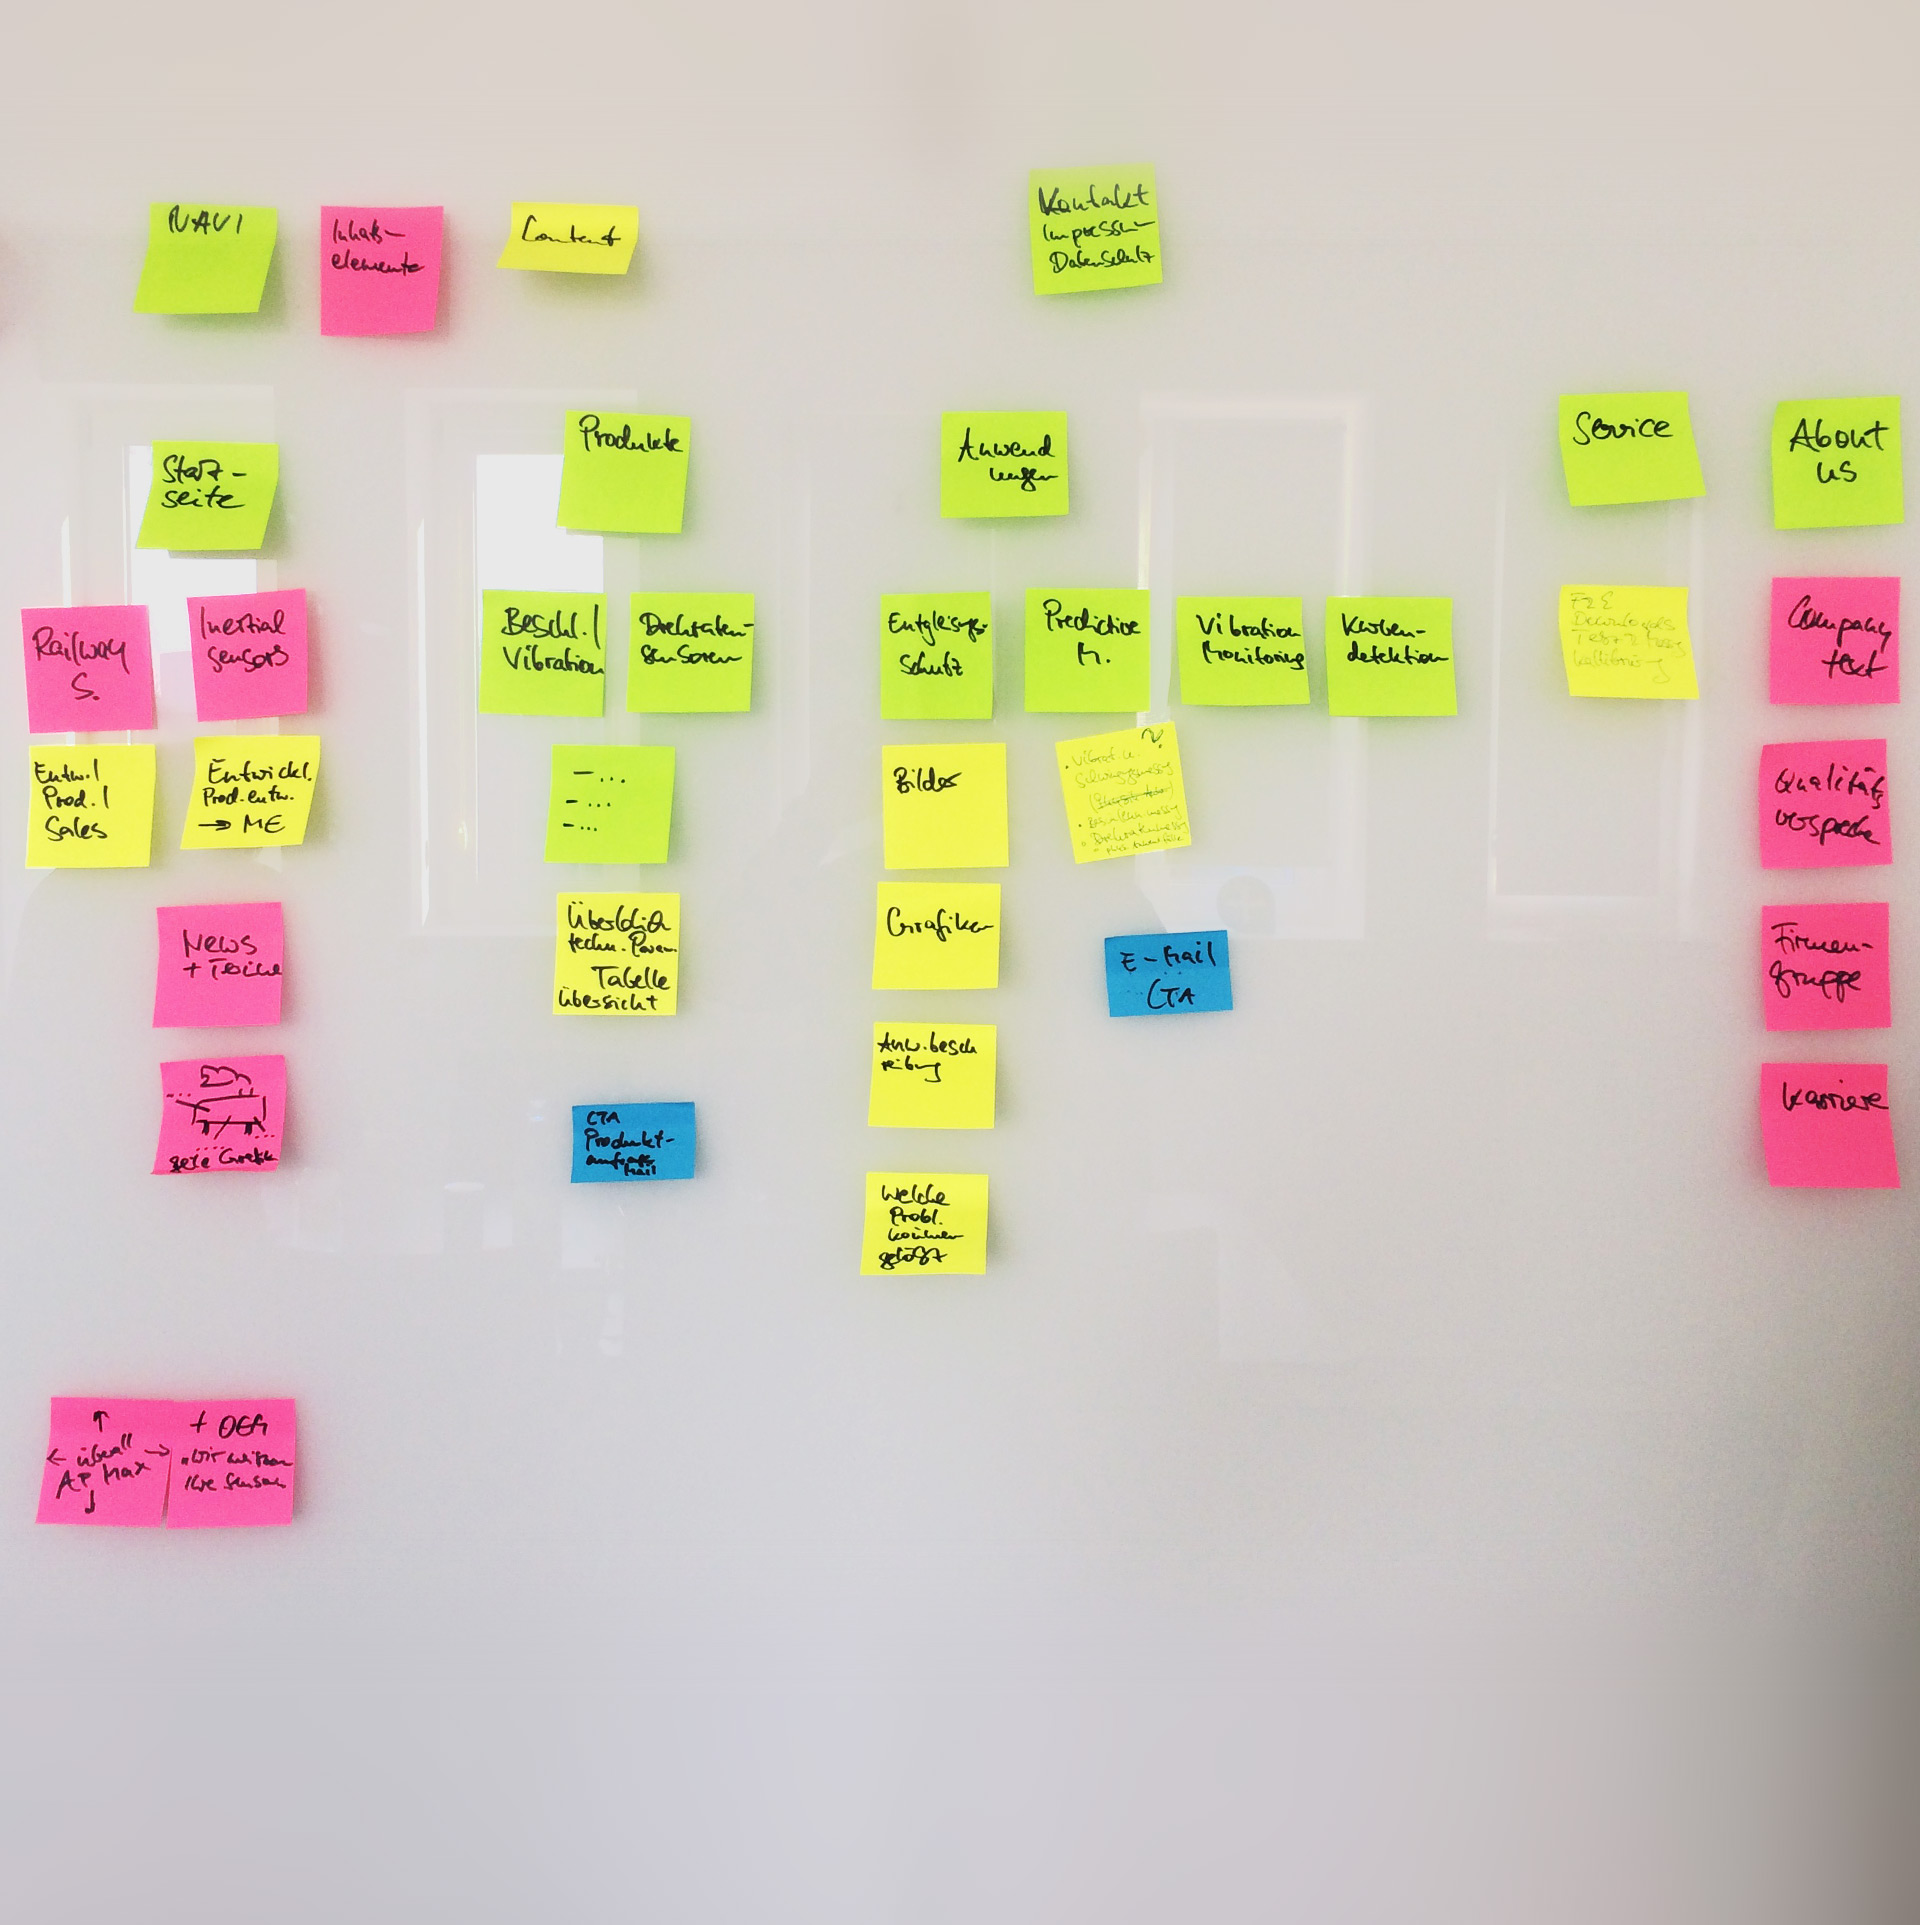 Bunte Post-its am Whiteboard zur Planung des Website-Aufbaus